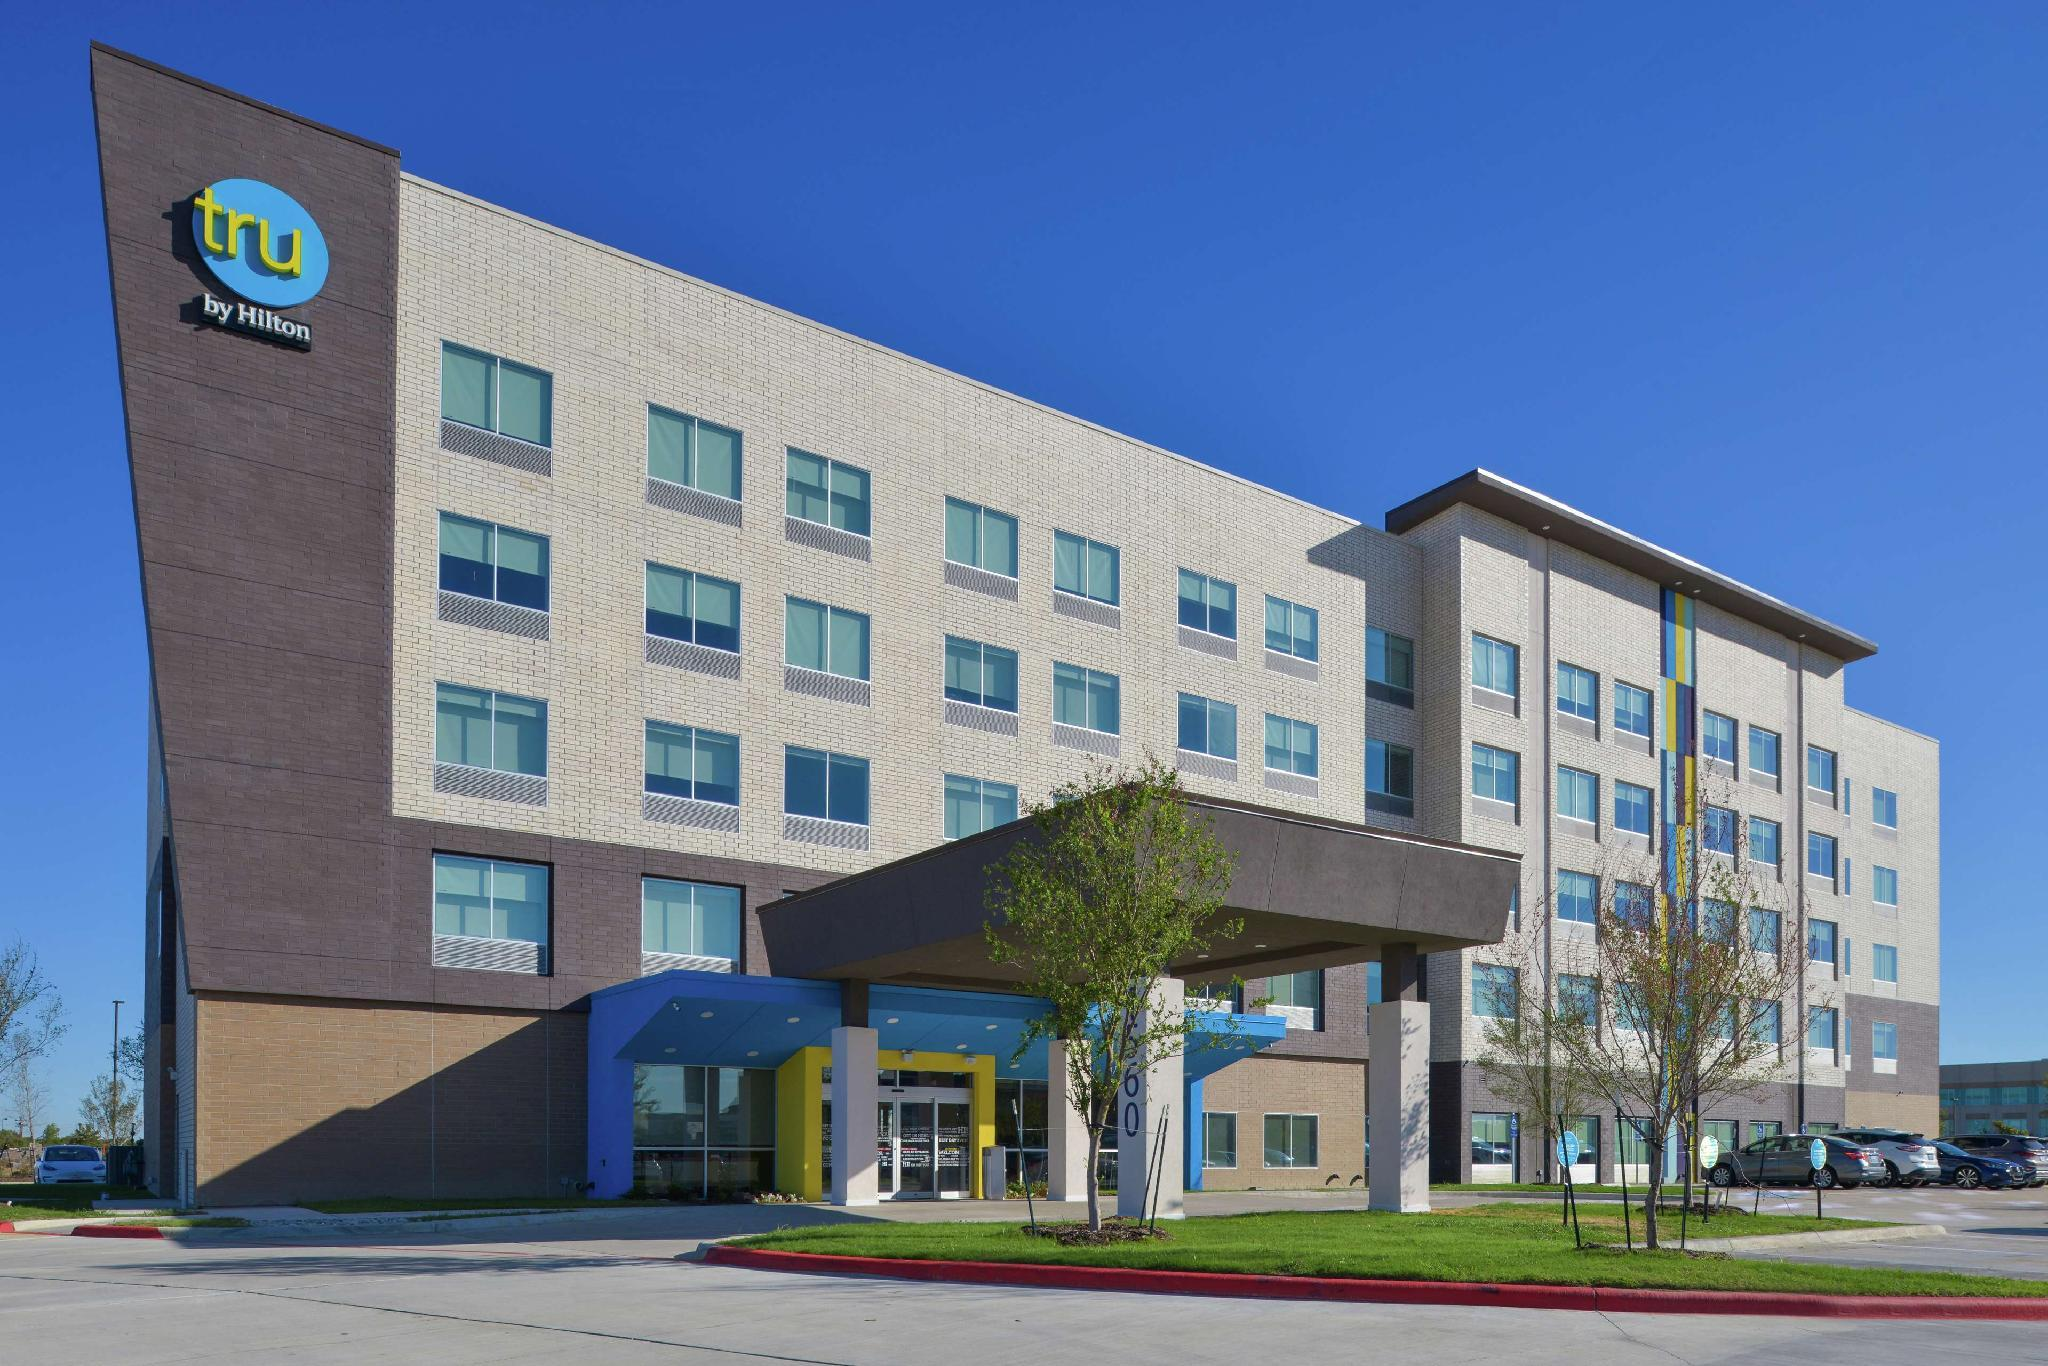 Tru By Hilton Coppell DFW Airport North